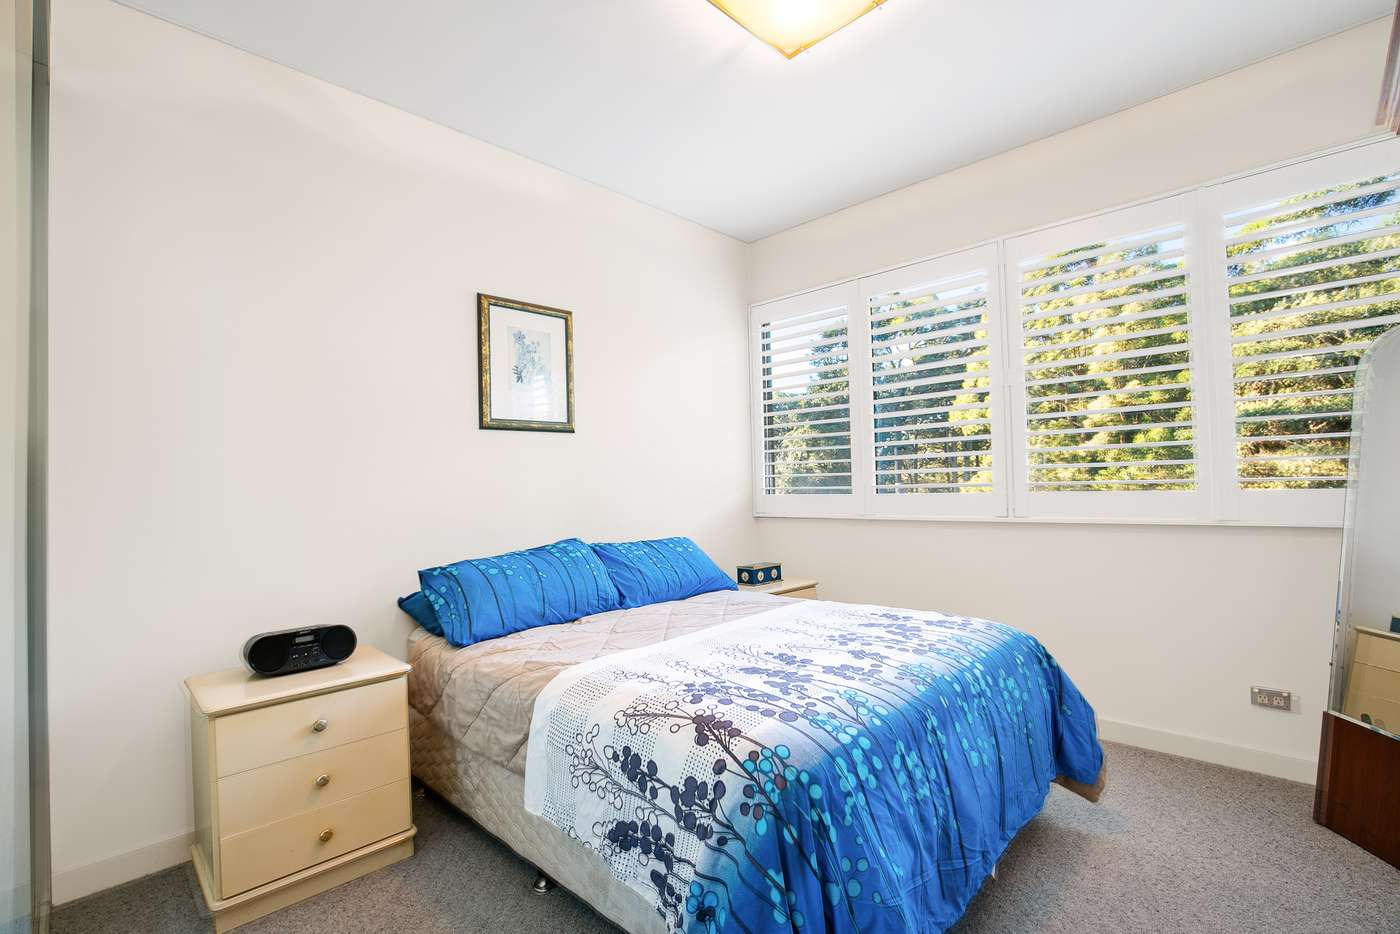 Sixth view of Homely apartment listing, 14/1-7 Newhaven Place, St Ives NSW 2075